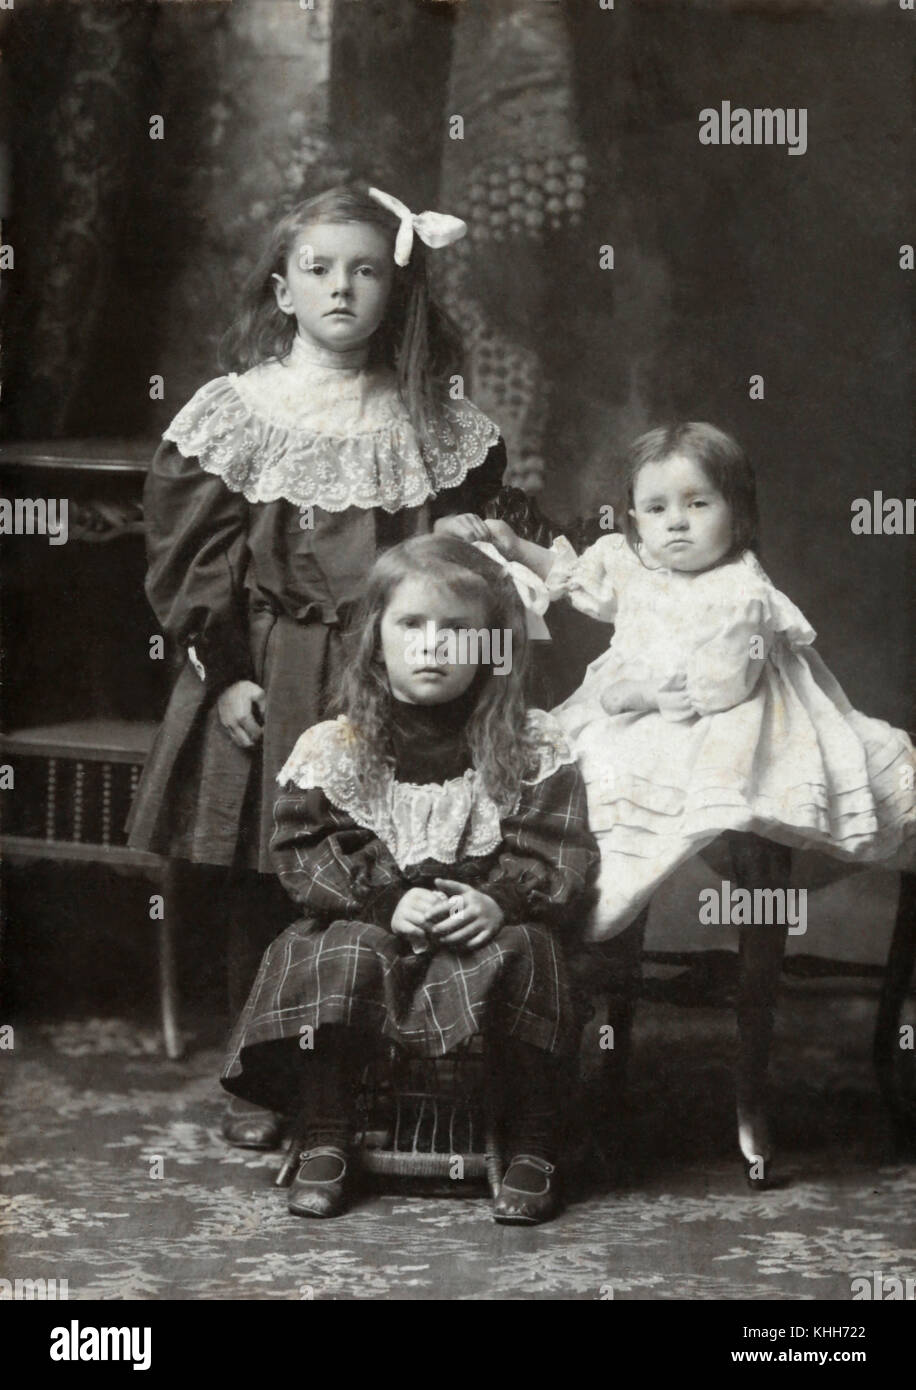 Family snaps over the ages covering 1860's through 1970's.  A collective look at the progression of the family tree. Stock Photo